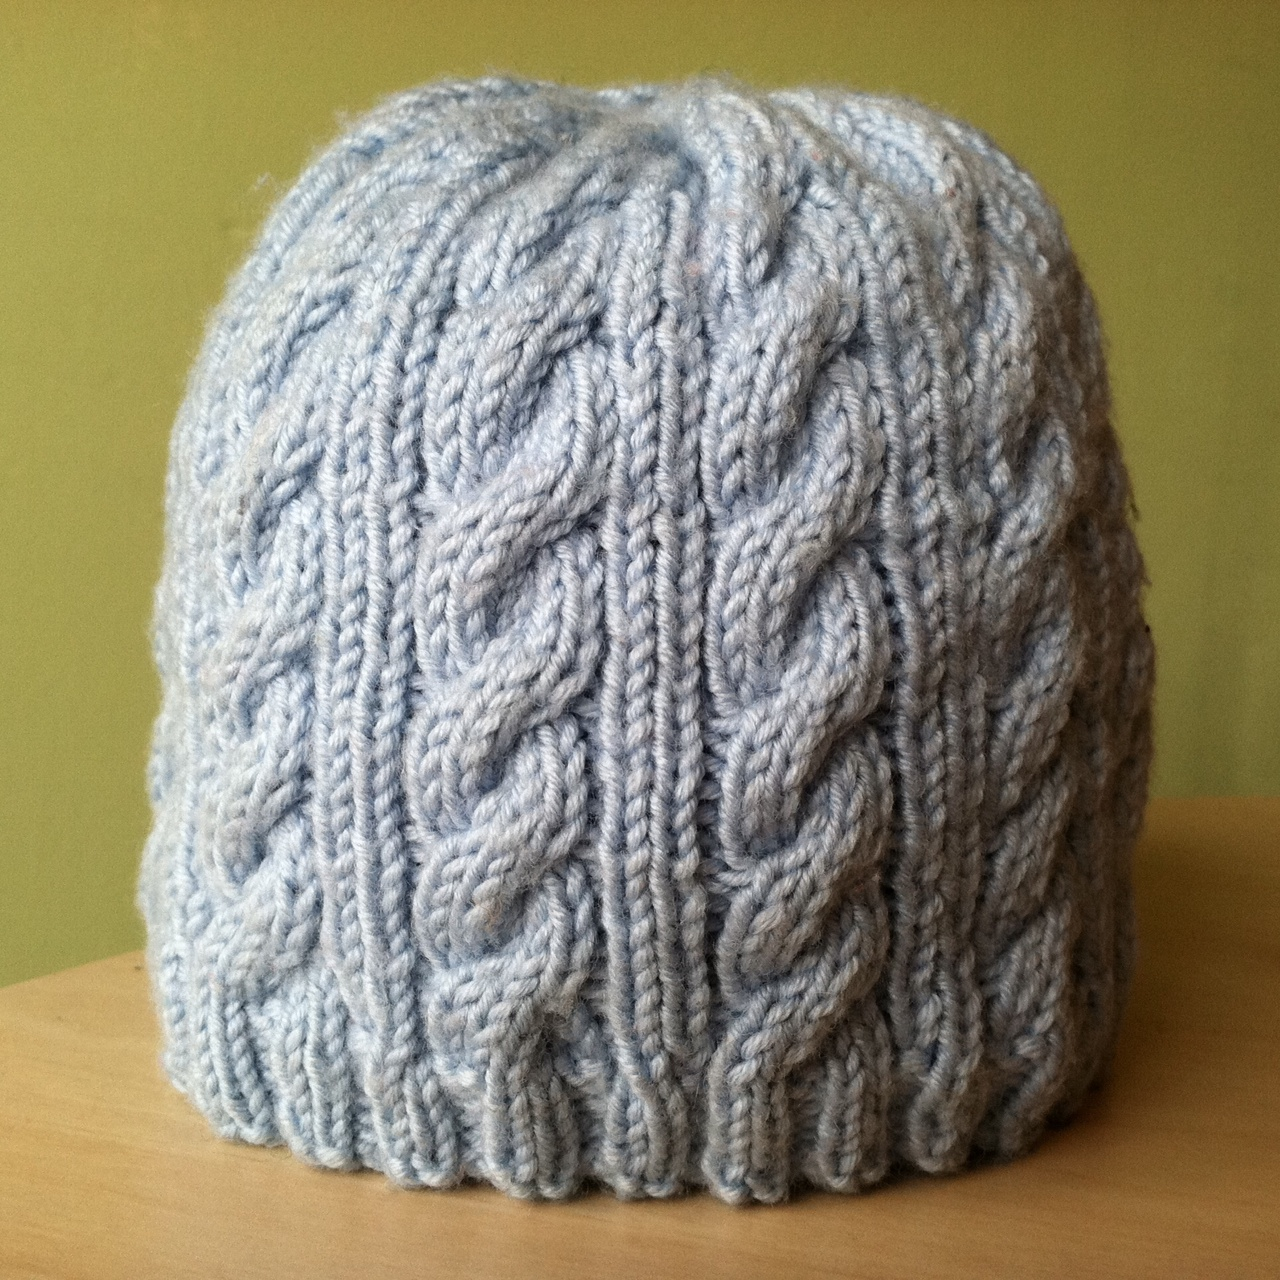 Knitting Pattern Cable Hat Easy : The Yarn Garden Blog: Upcoming Class: Easy Baby Cable Knit Hat